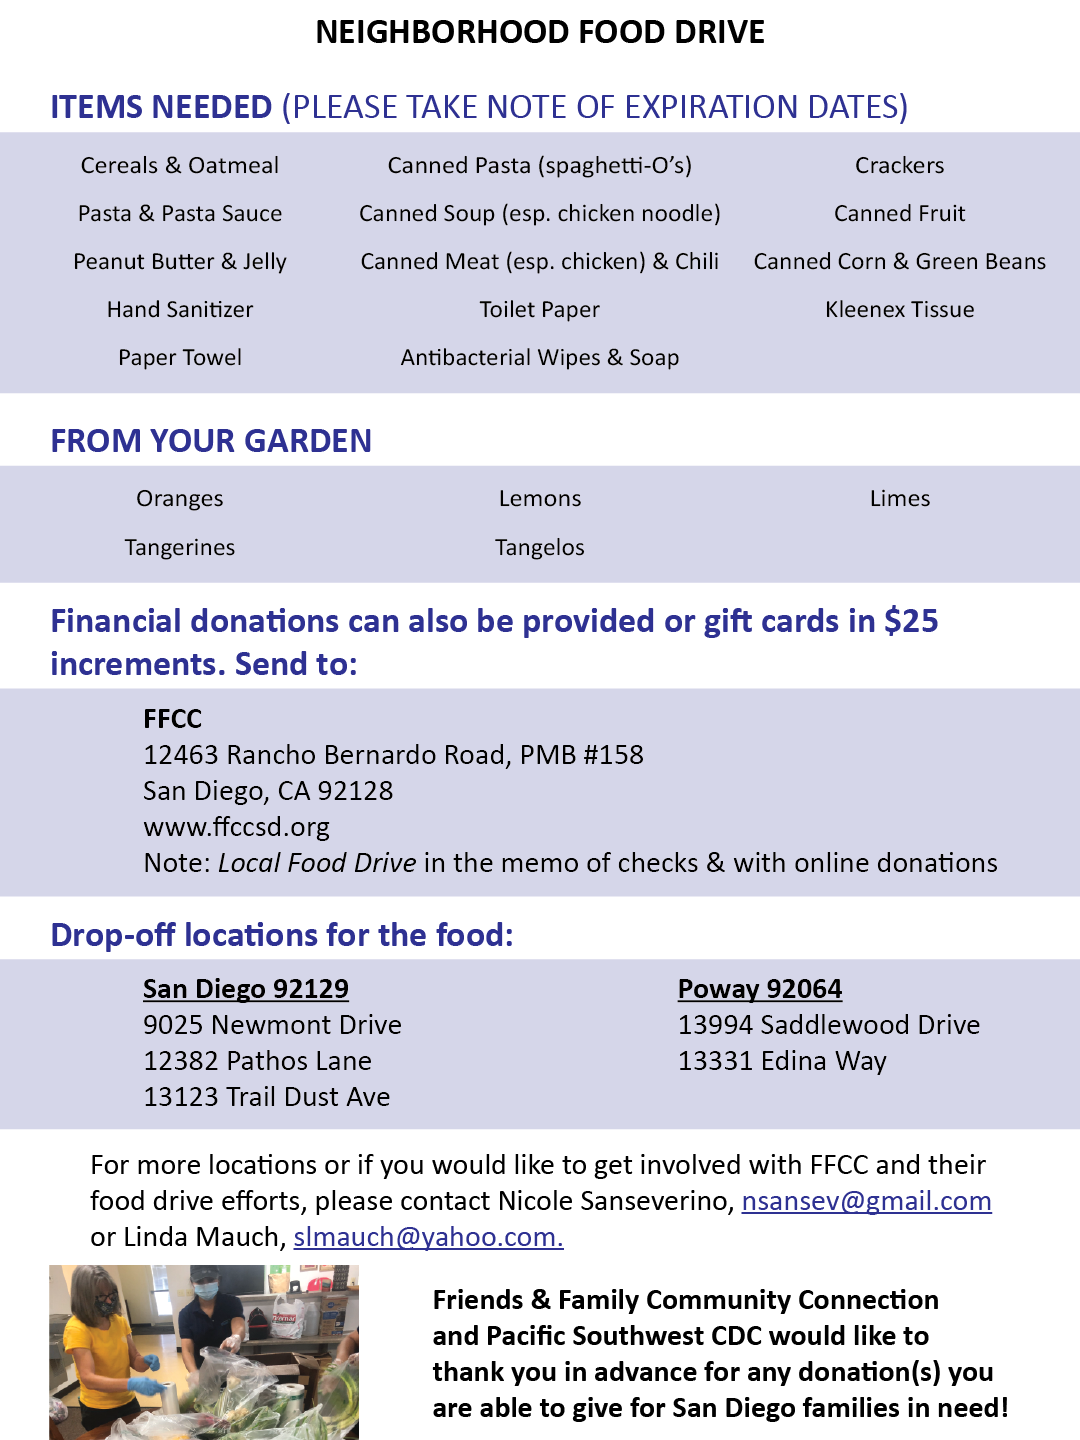 FFCC Updated Donation Food List